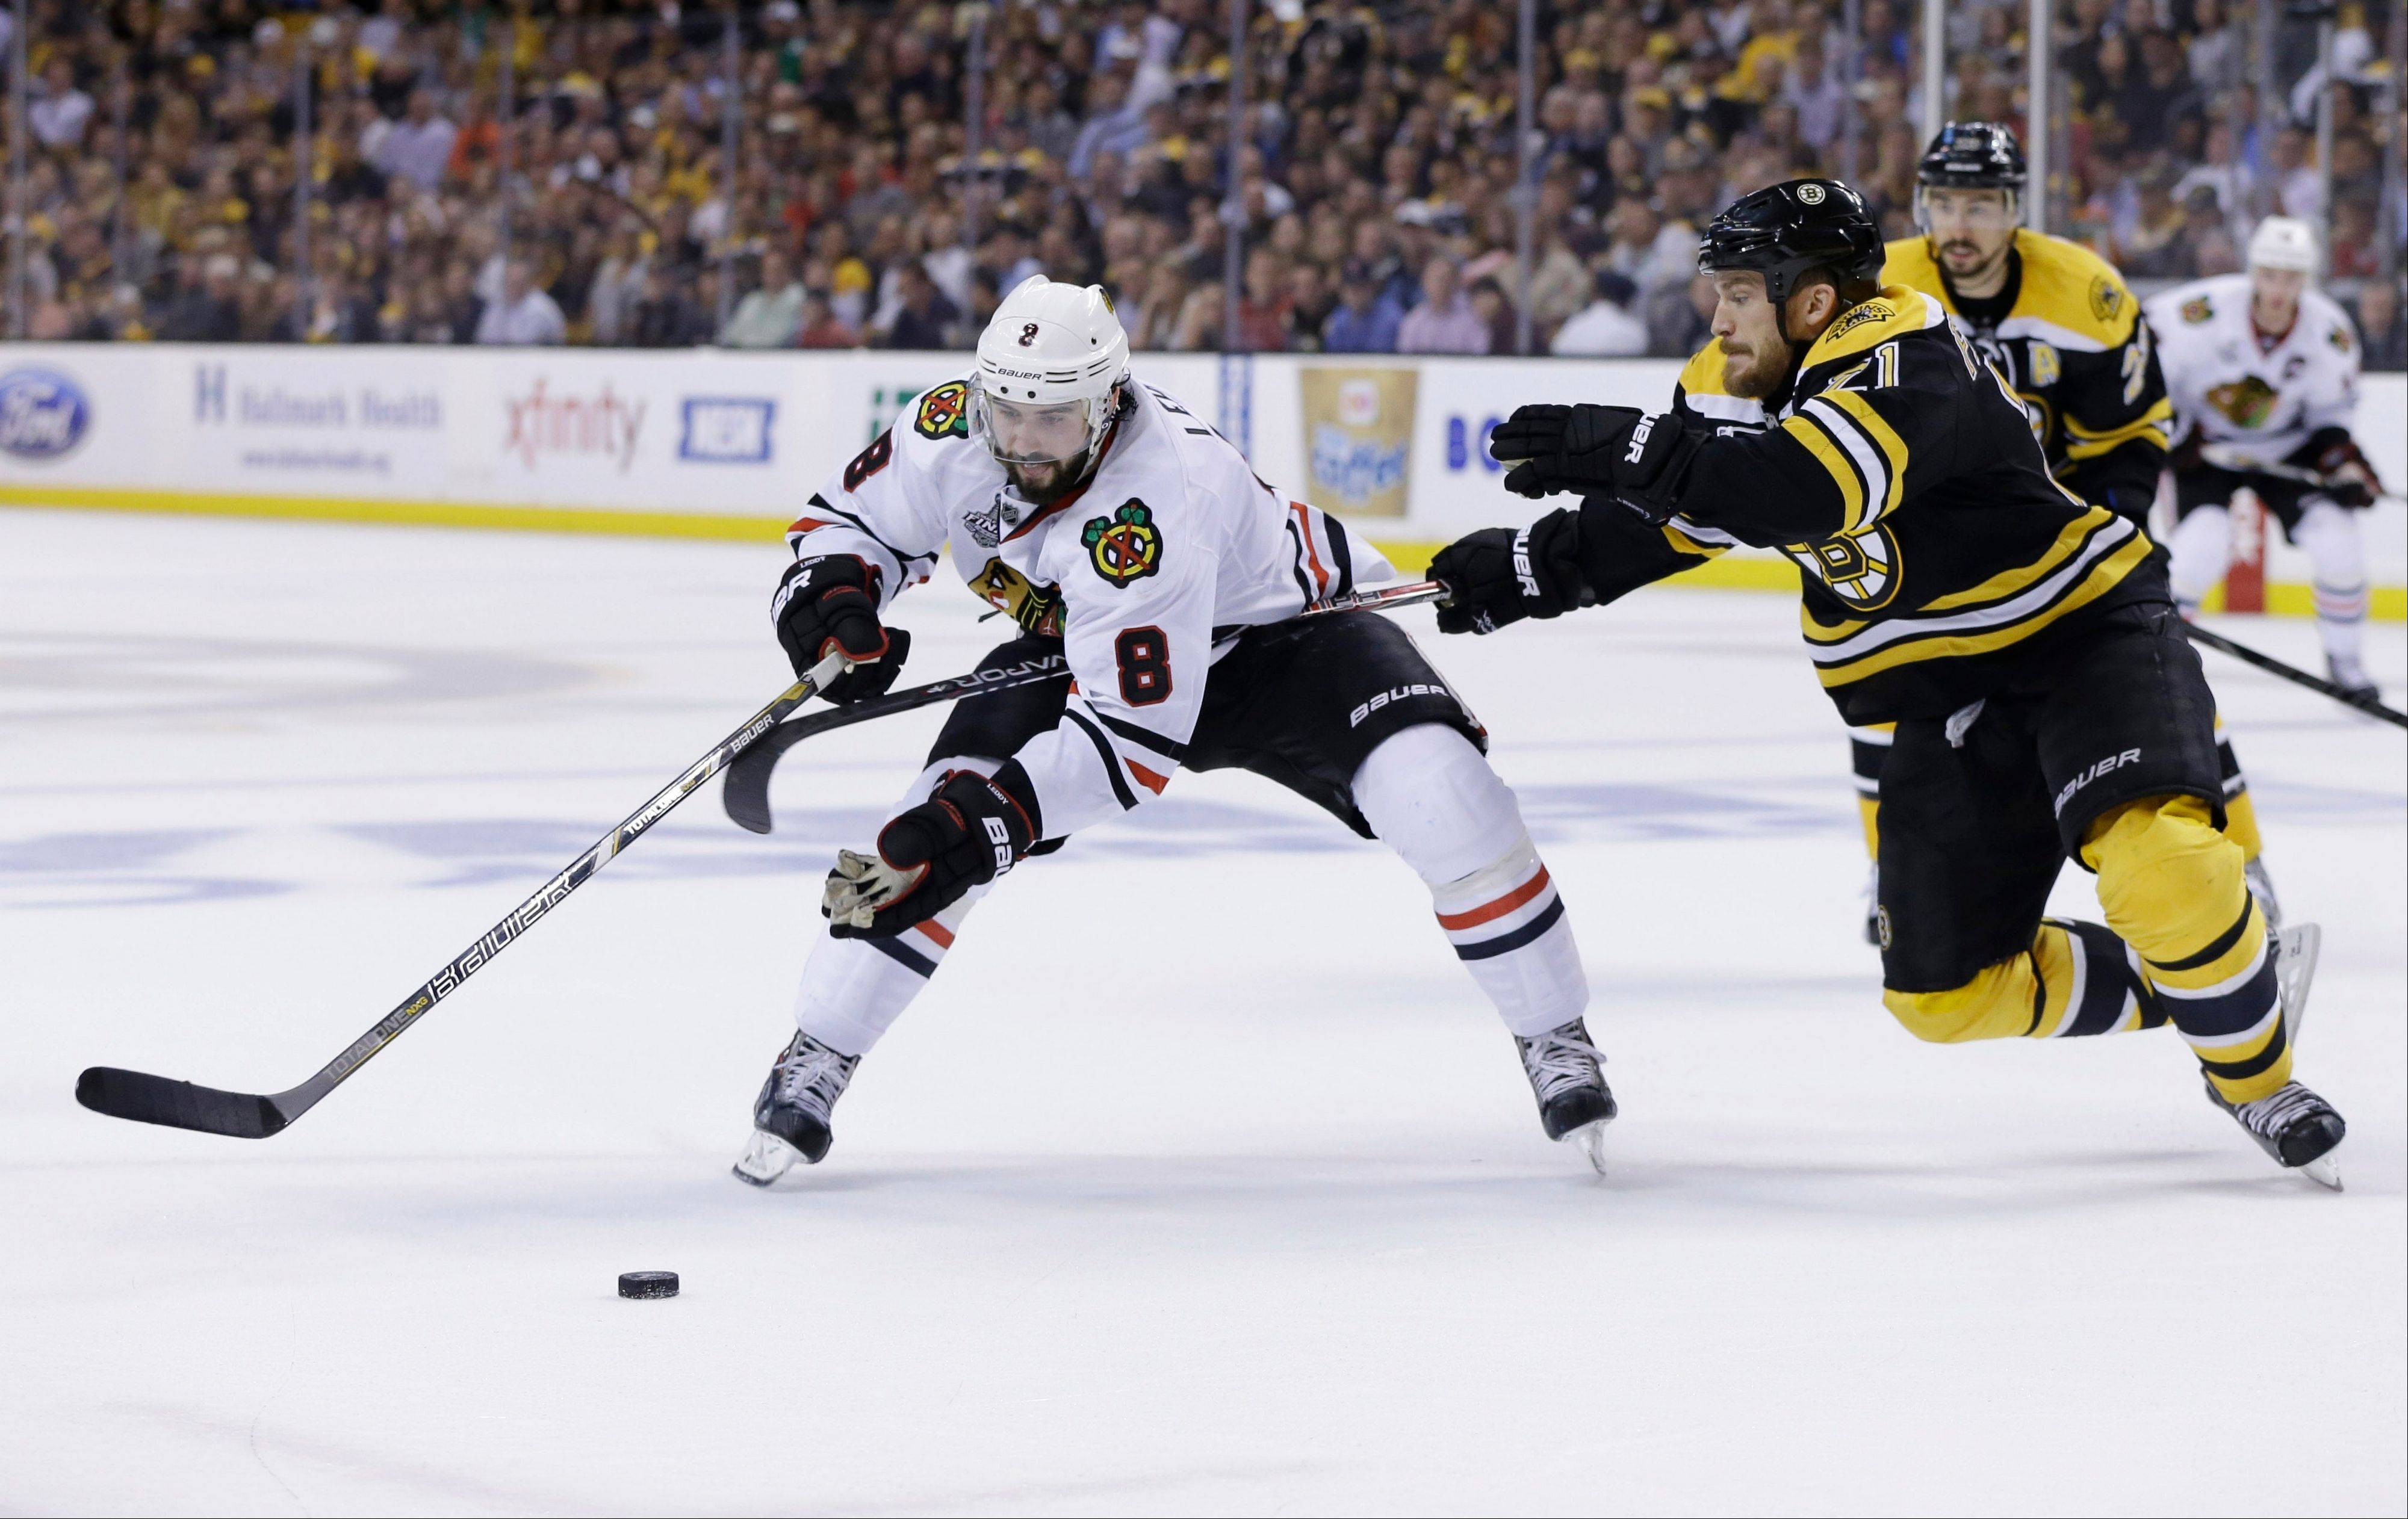 Boston Bruins defenseman Andrew Ference (21) defends against Chicago Blackhawks defenseman Nick Leddy (8) during the third period in Game 3 of the NHL hockey Stanley Cup Finals.